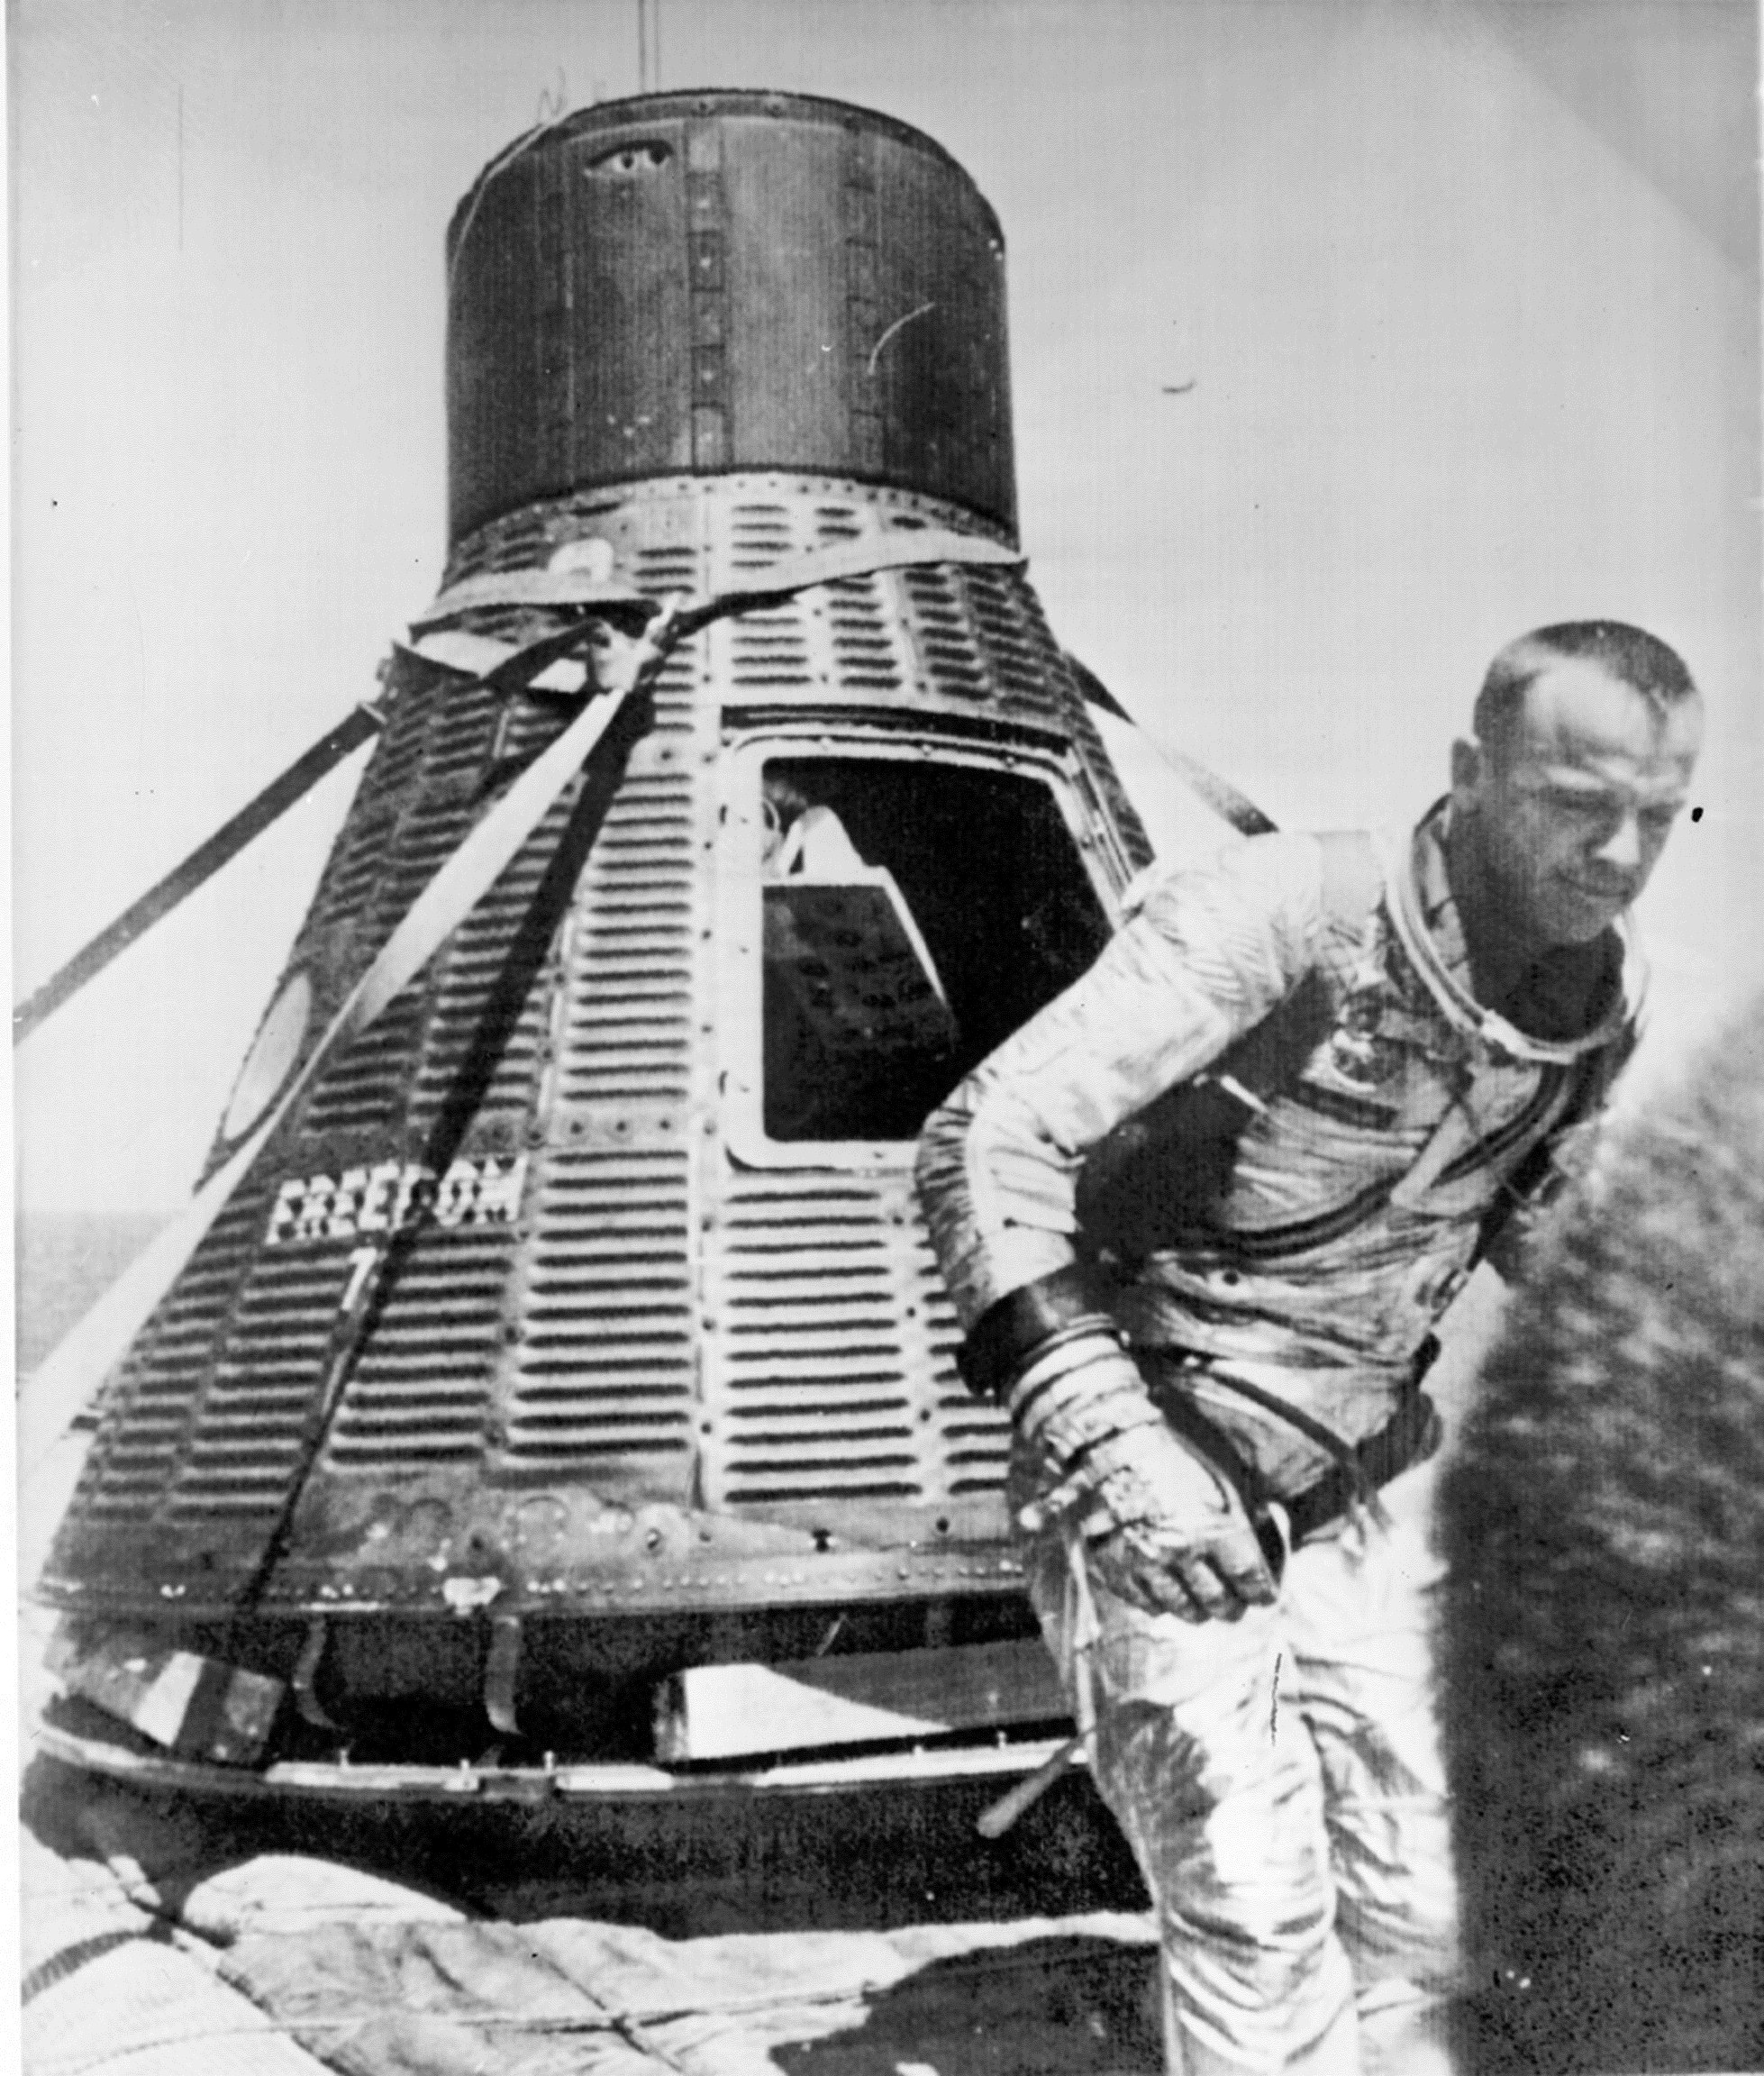 american space program 1961 gallery - photo #11